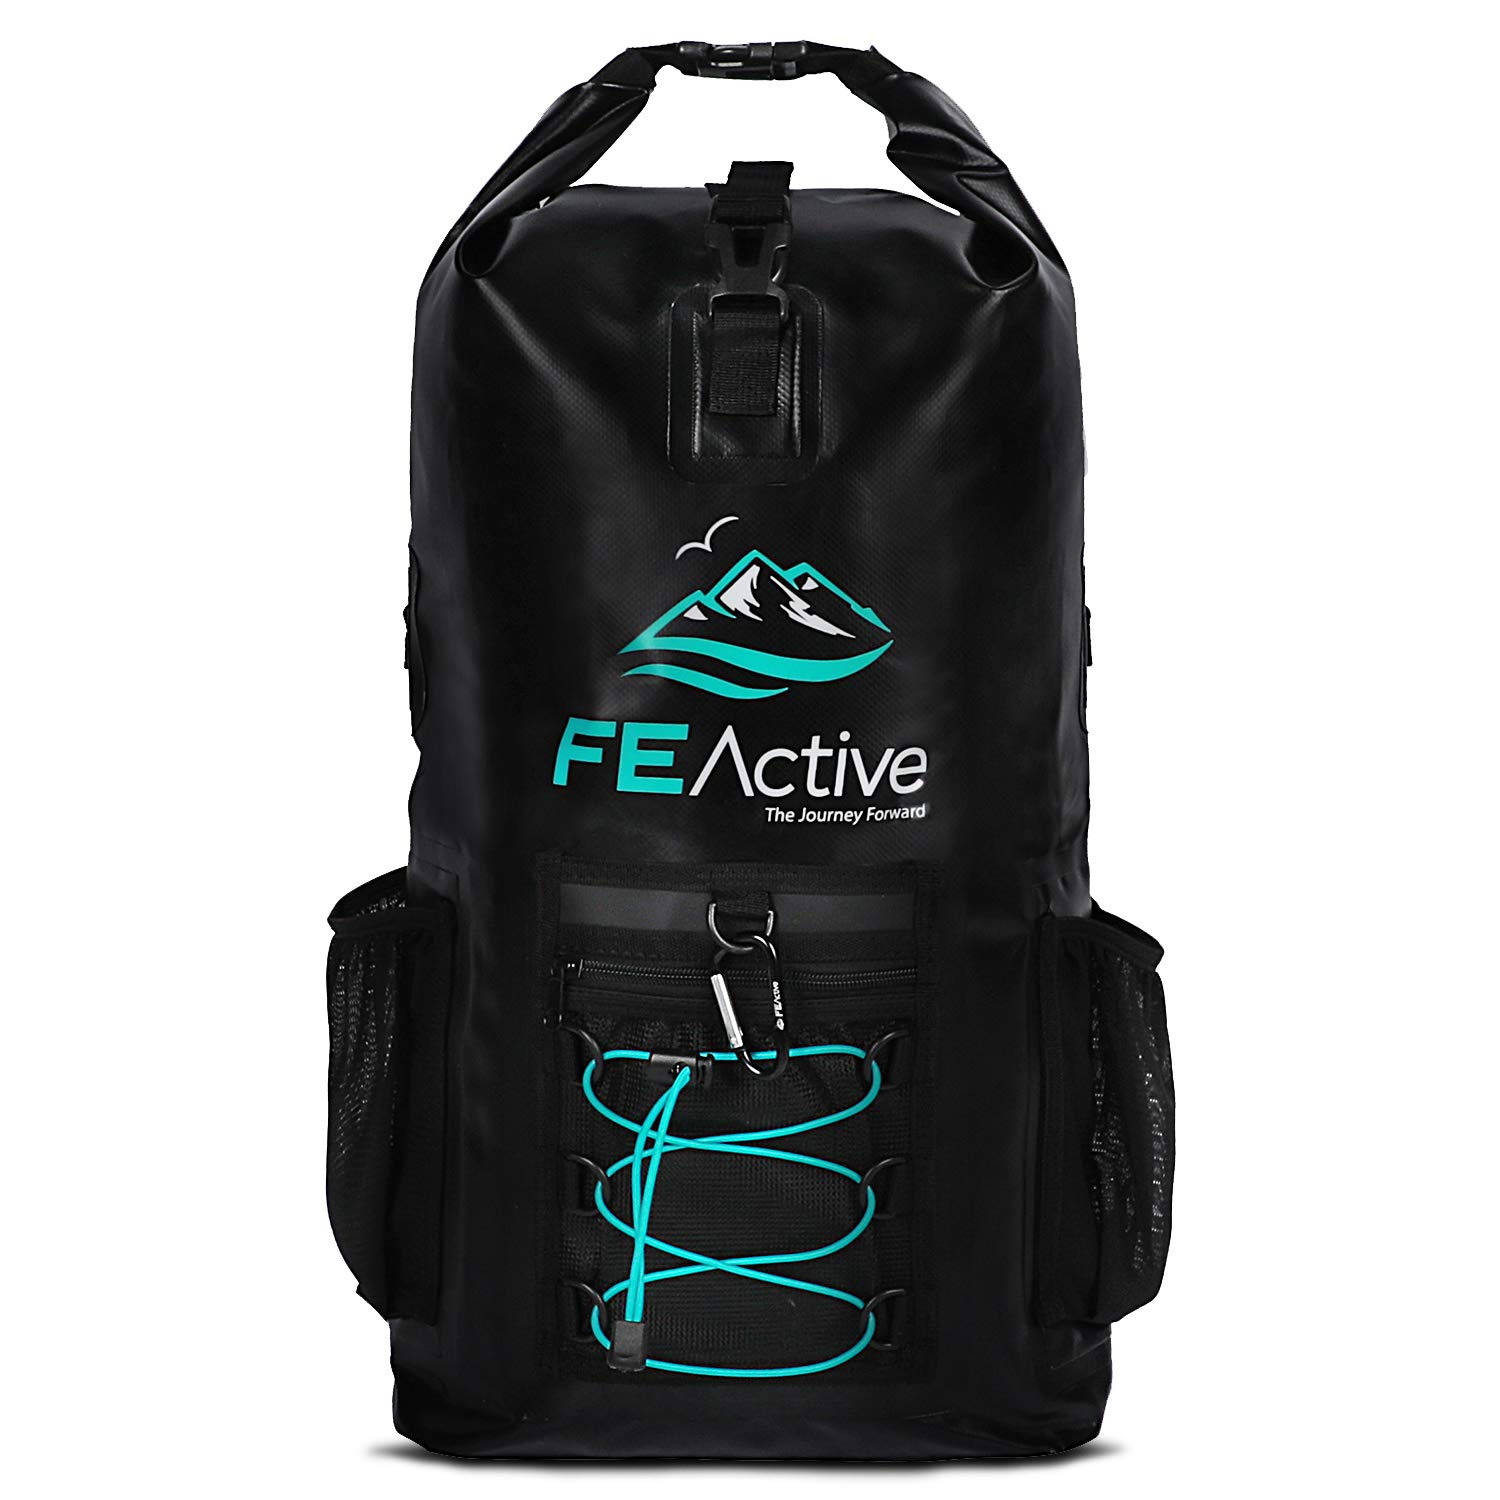 FE Active Dry Bag Waterproof Backpack - 20L Eco Friendly Hiking Backpack. Ideal for Camping Accessories & Fishing Gear. Great Travel Bag, Beach Bag for Kayak & Boating | Designed in California, USA